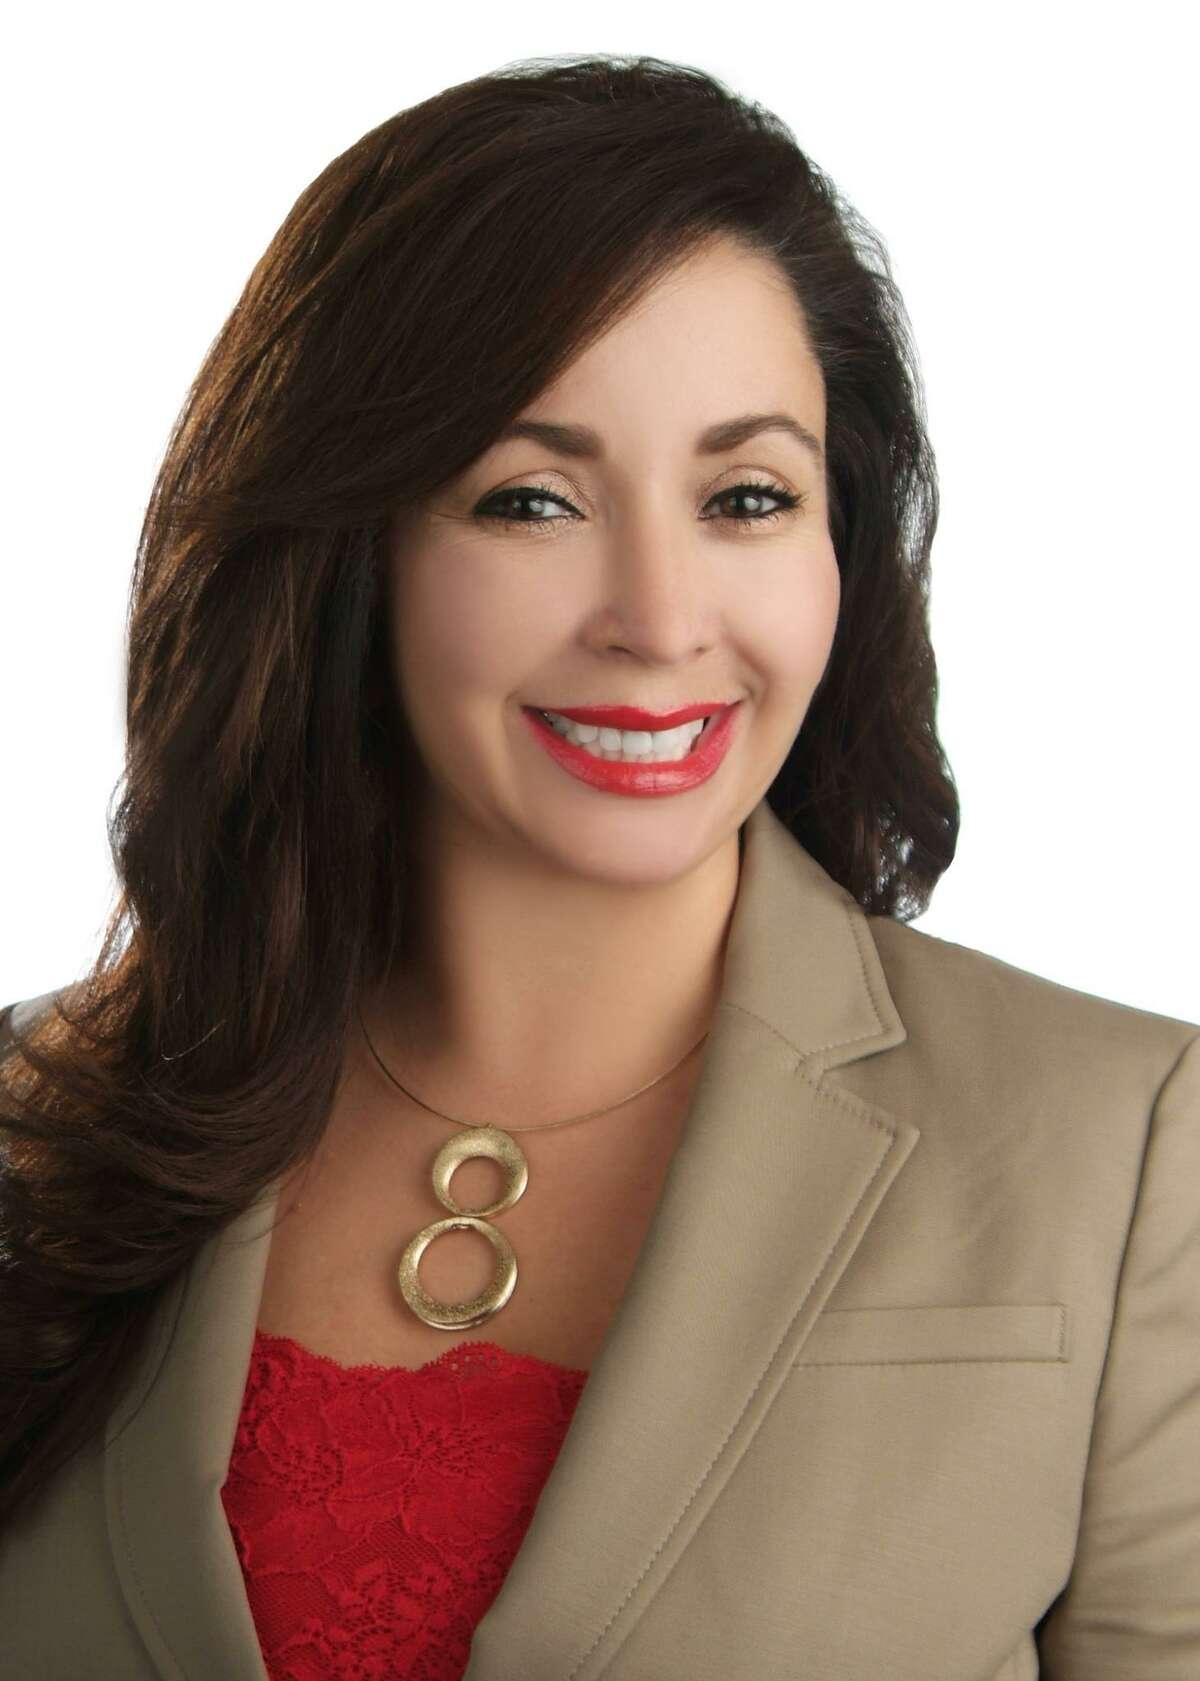 """Elizabeth """"Liz"""" Campos is challenging incumbent Rebecca Viagran for the District 3 City Council seat in the May 4, 2019 municipal election."""